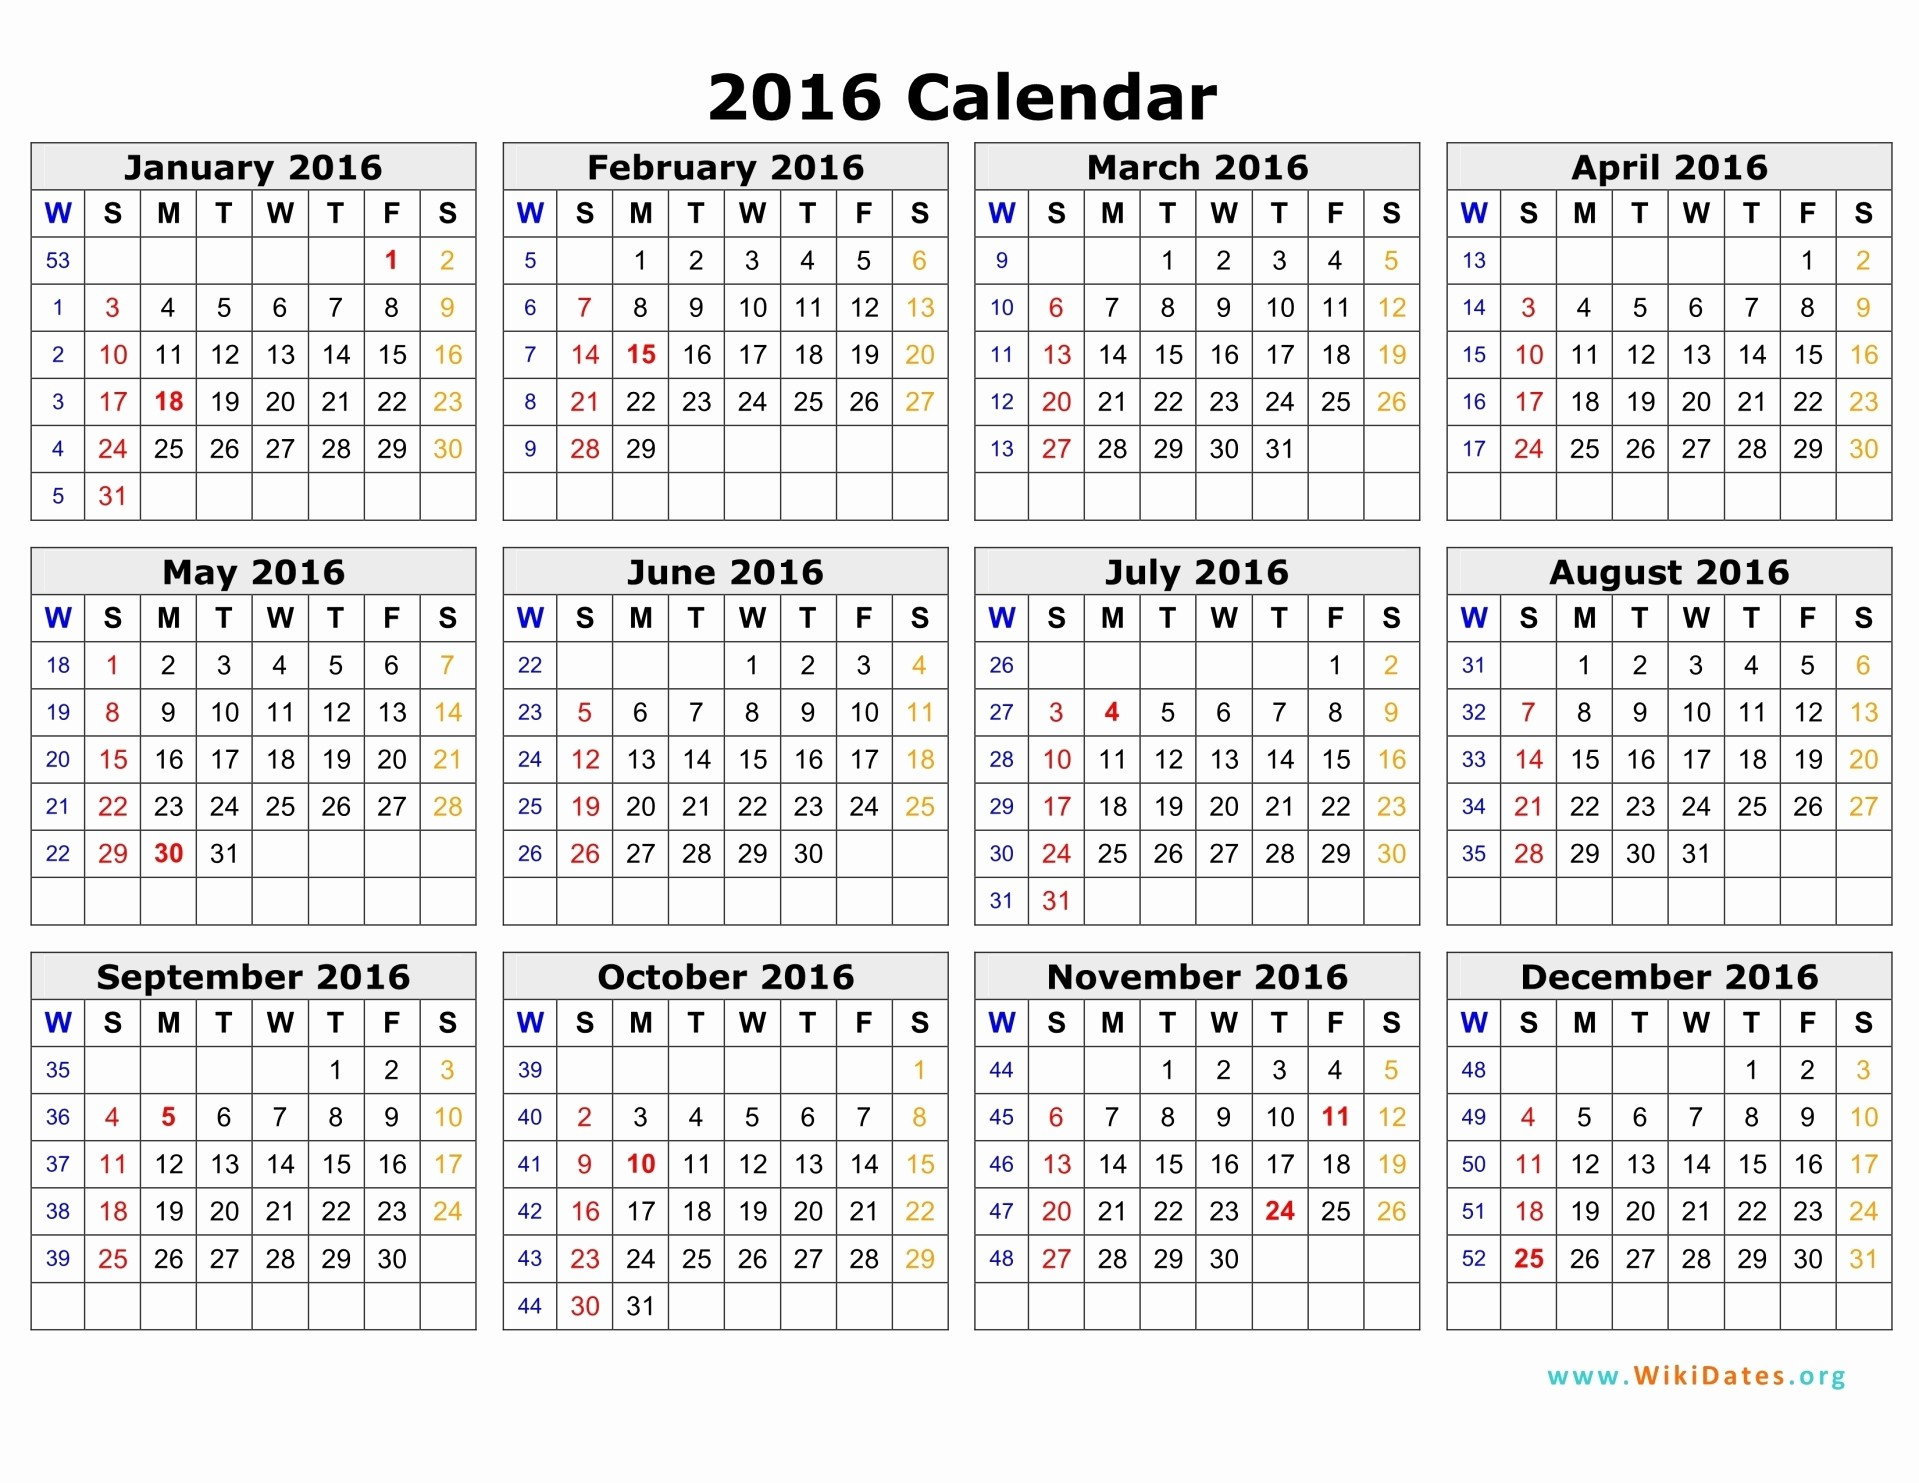 2016 Calendar Excel with Holidays Lovely Weekly Calendar 2016